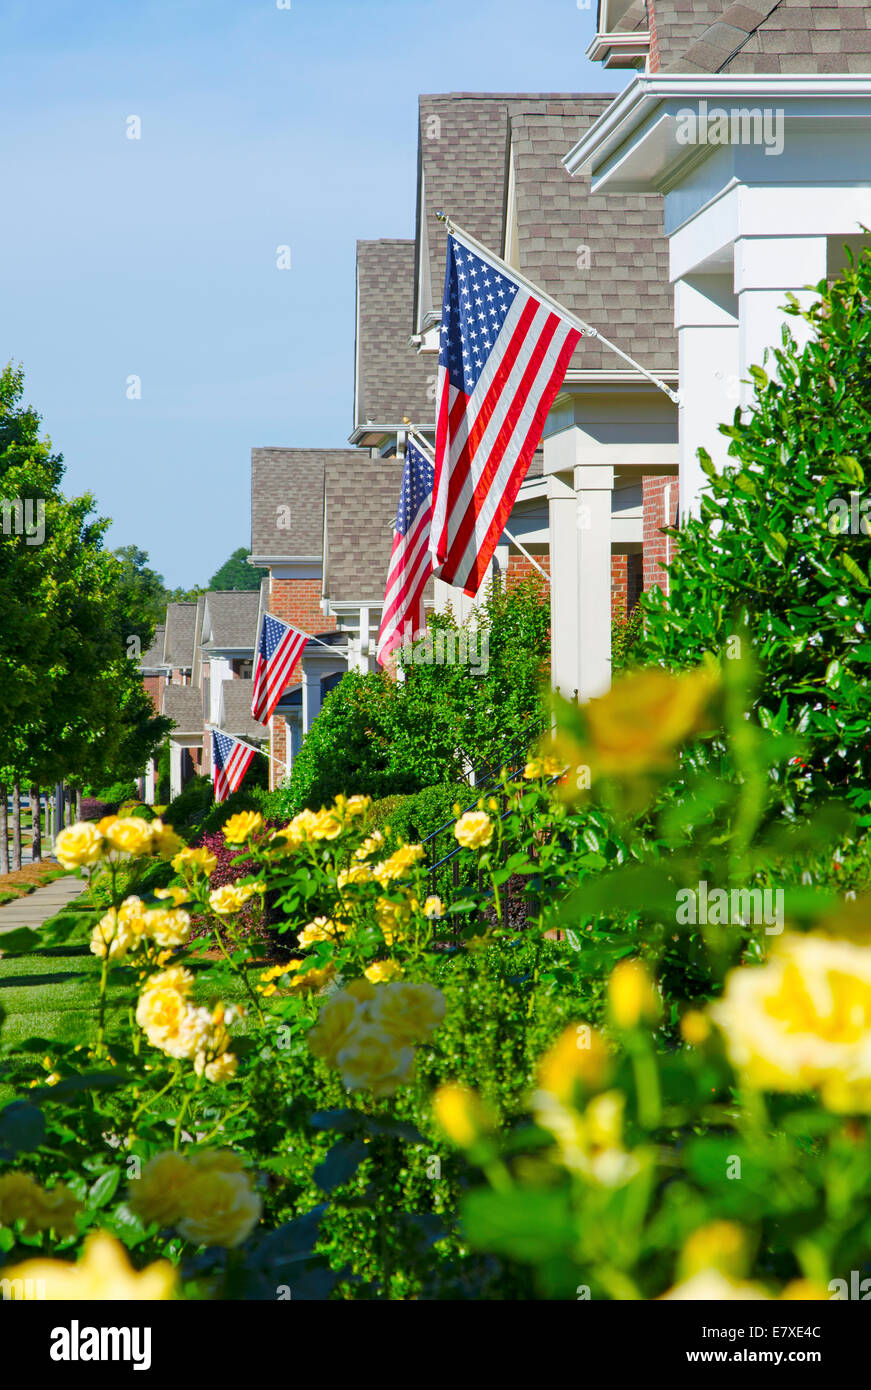 american flags hang from a front porches in a neighborhood